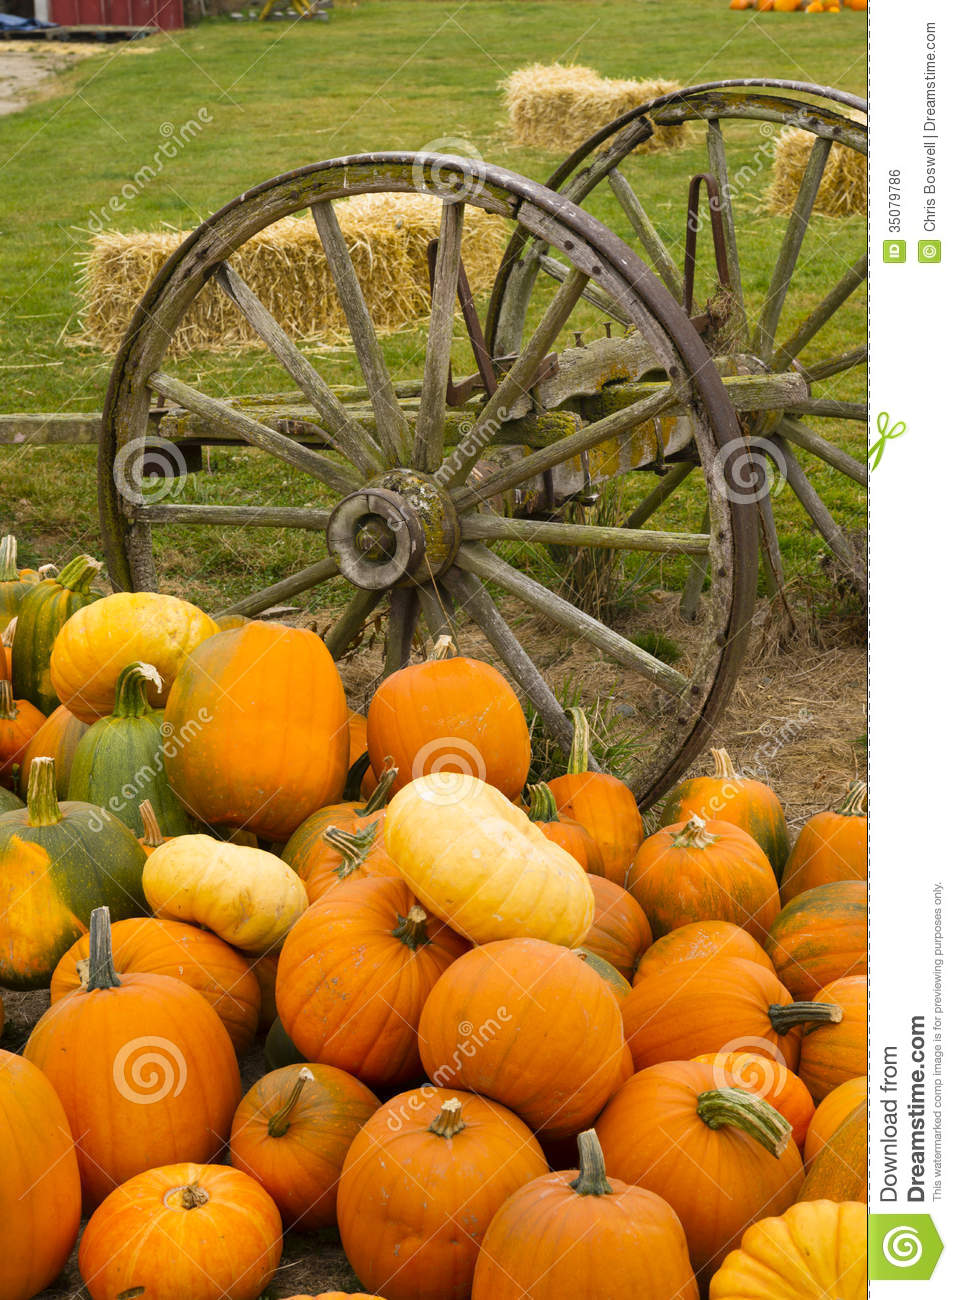 Farm Scene Old Wagon Vegetable Pile Autumn Pumpkins October Pumpkin Ready Purchase Local further Surreal Photomanipulation as well Disneyland Halloween Wallpaper besides How To Paint A Fall Tree Feature further P. on fall halloween scene